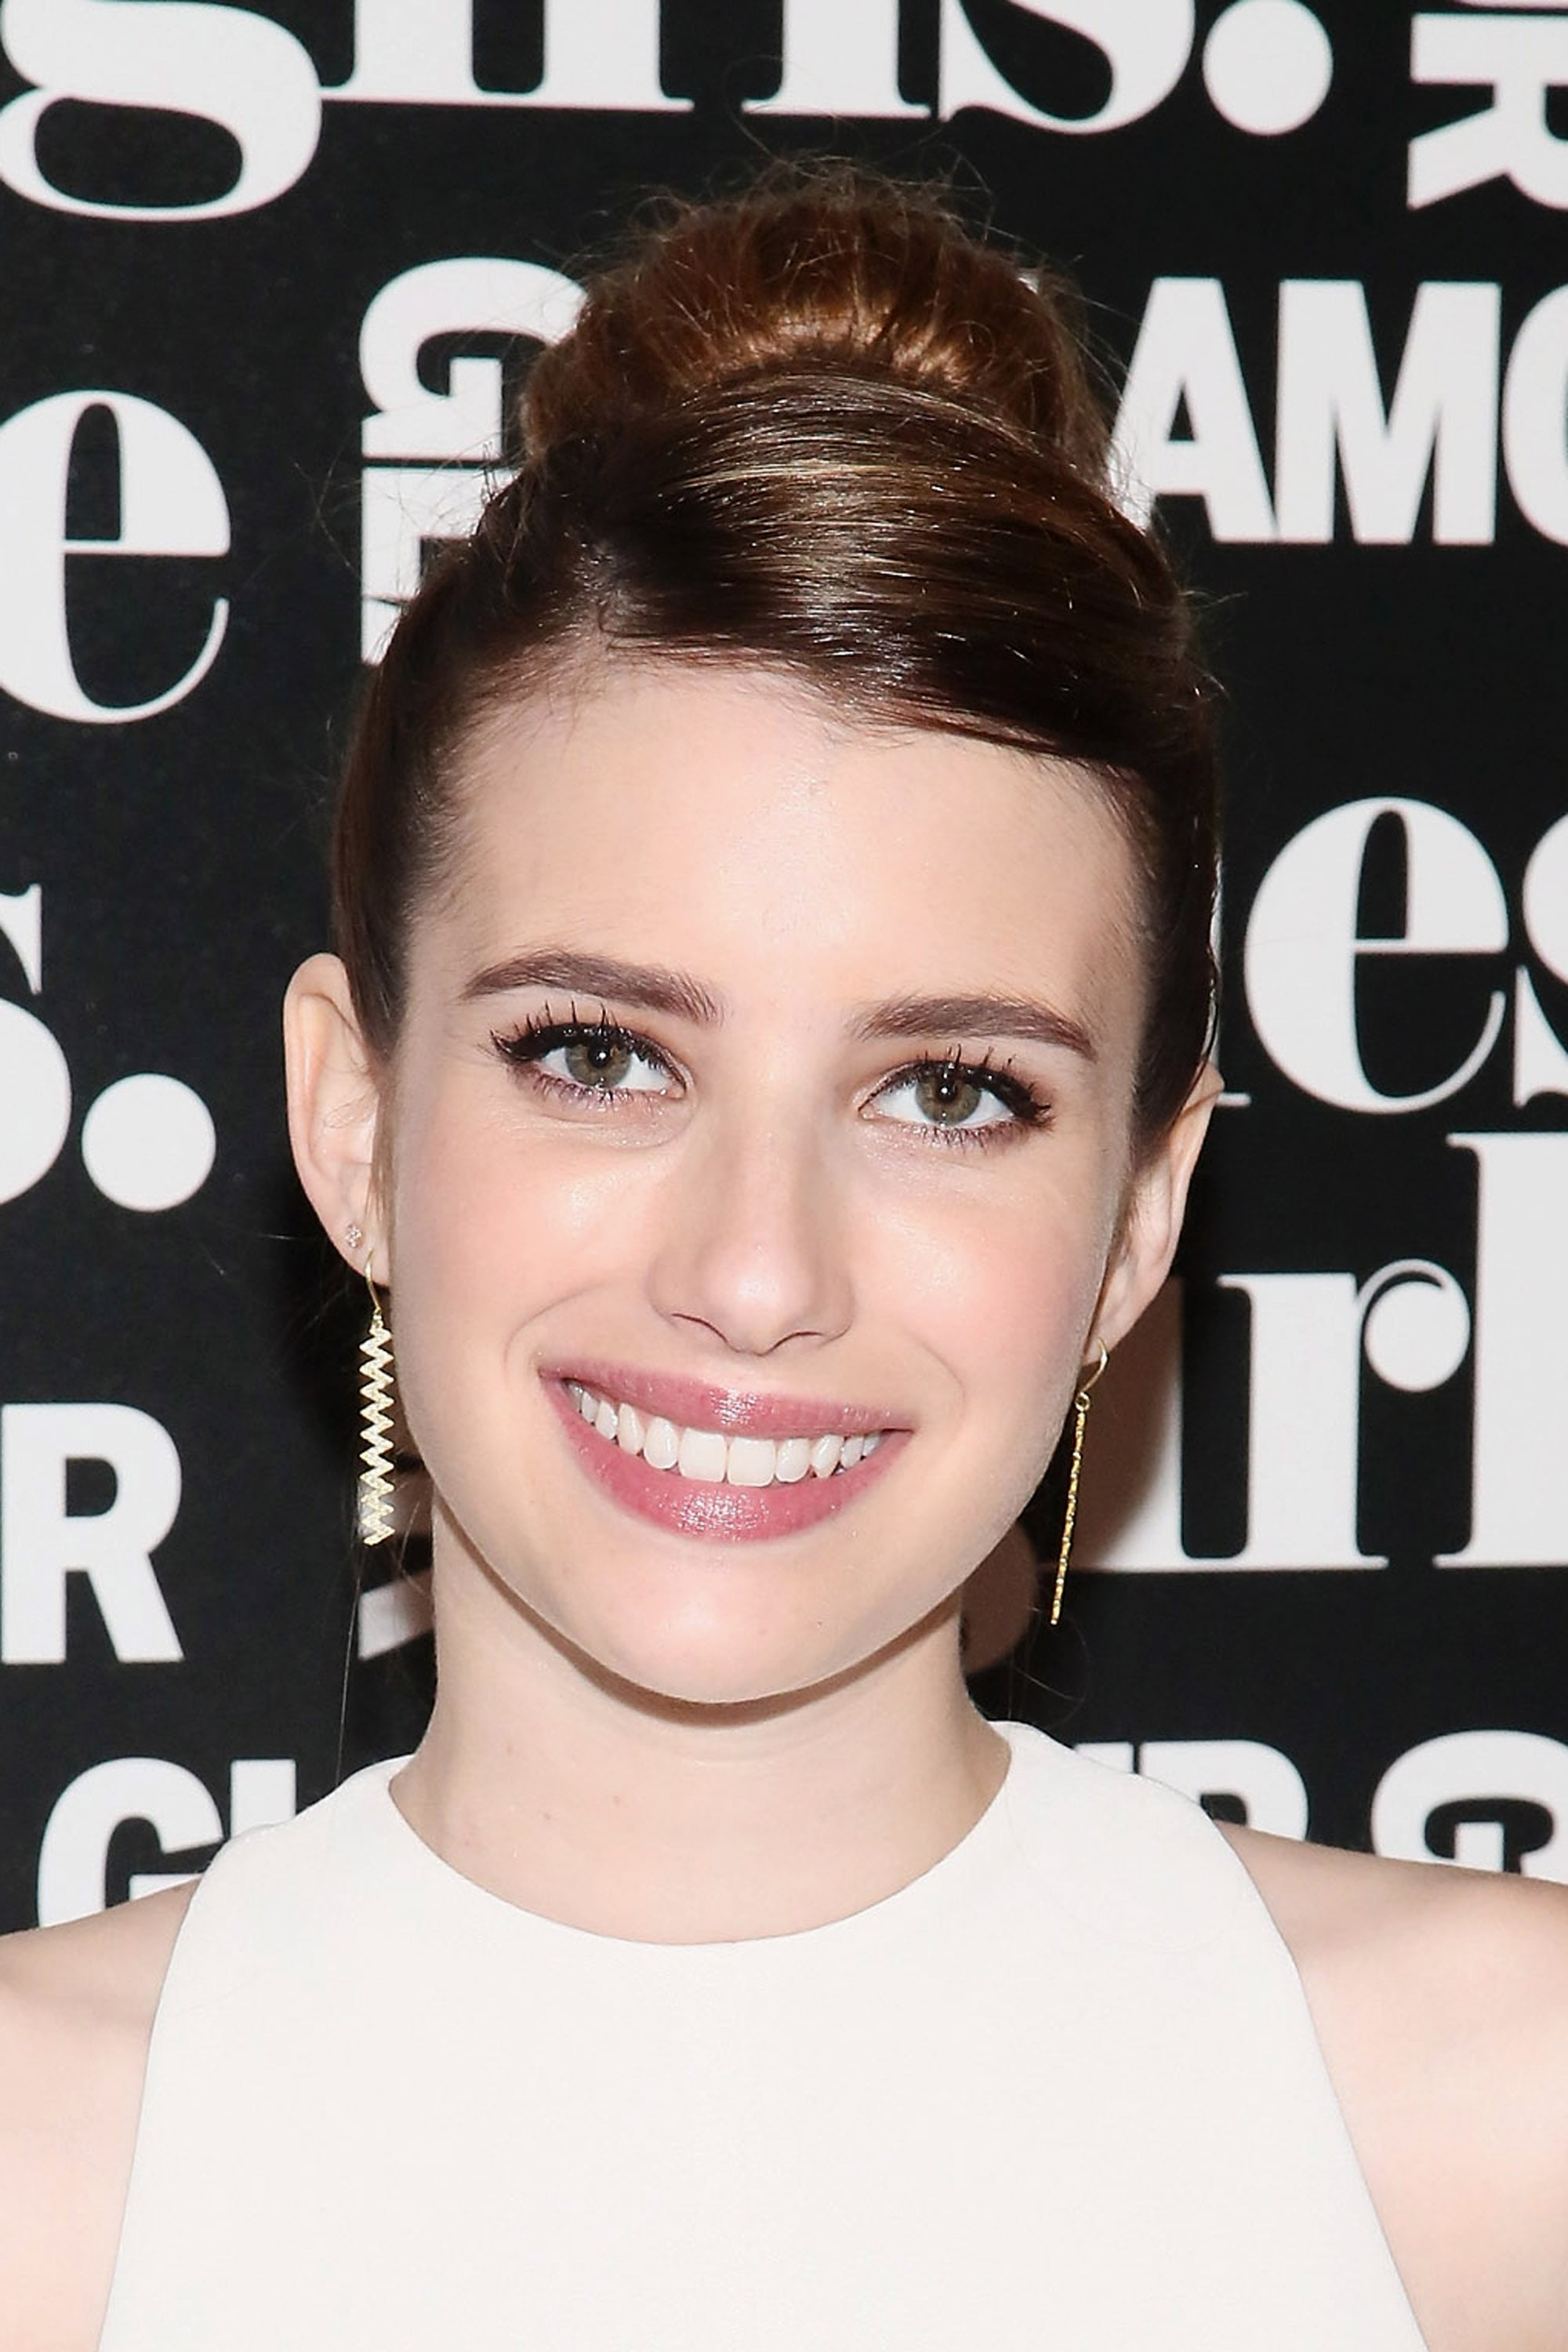 Don't want to let your fringe hang? Take note of Emma Roberts's style and sweep your bangs to the side with a part.